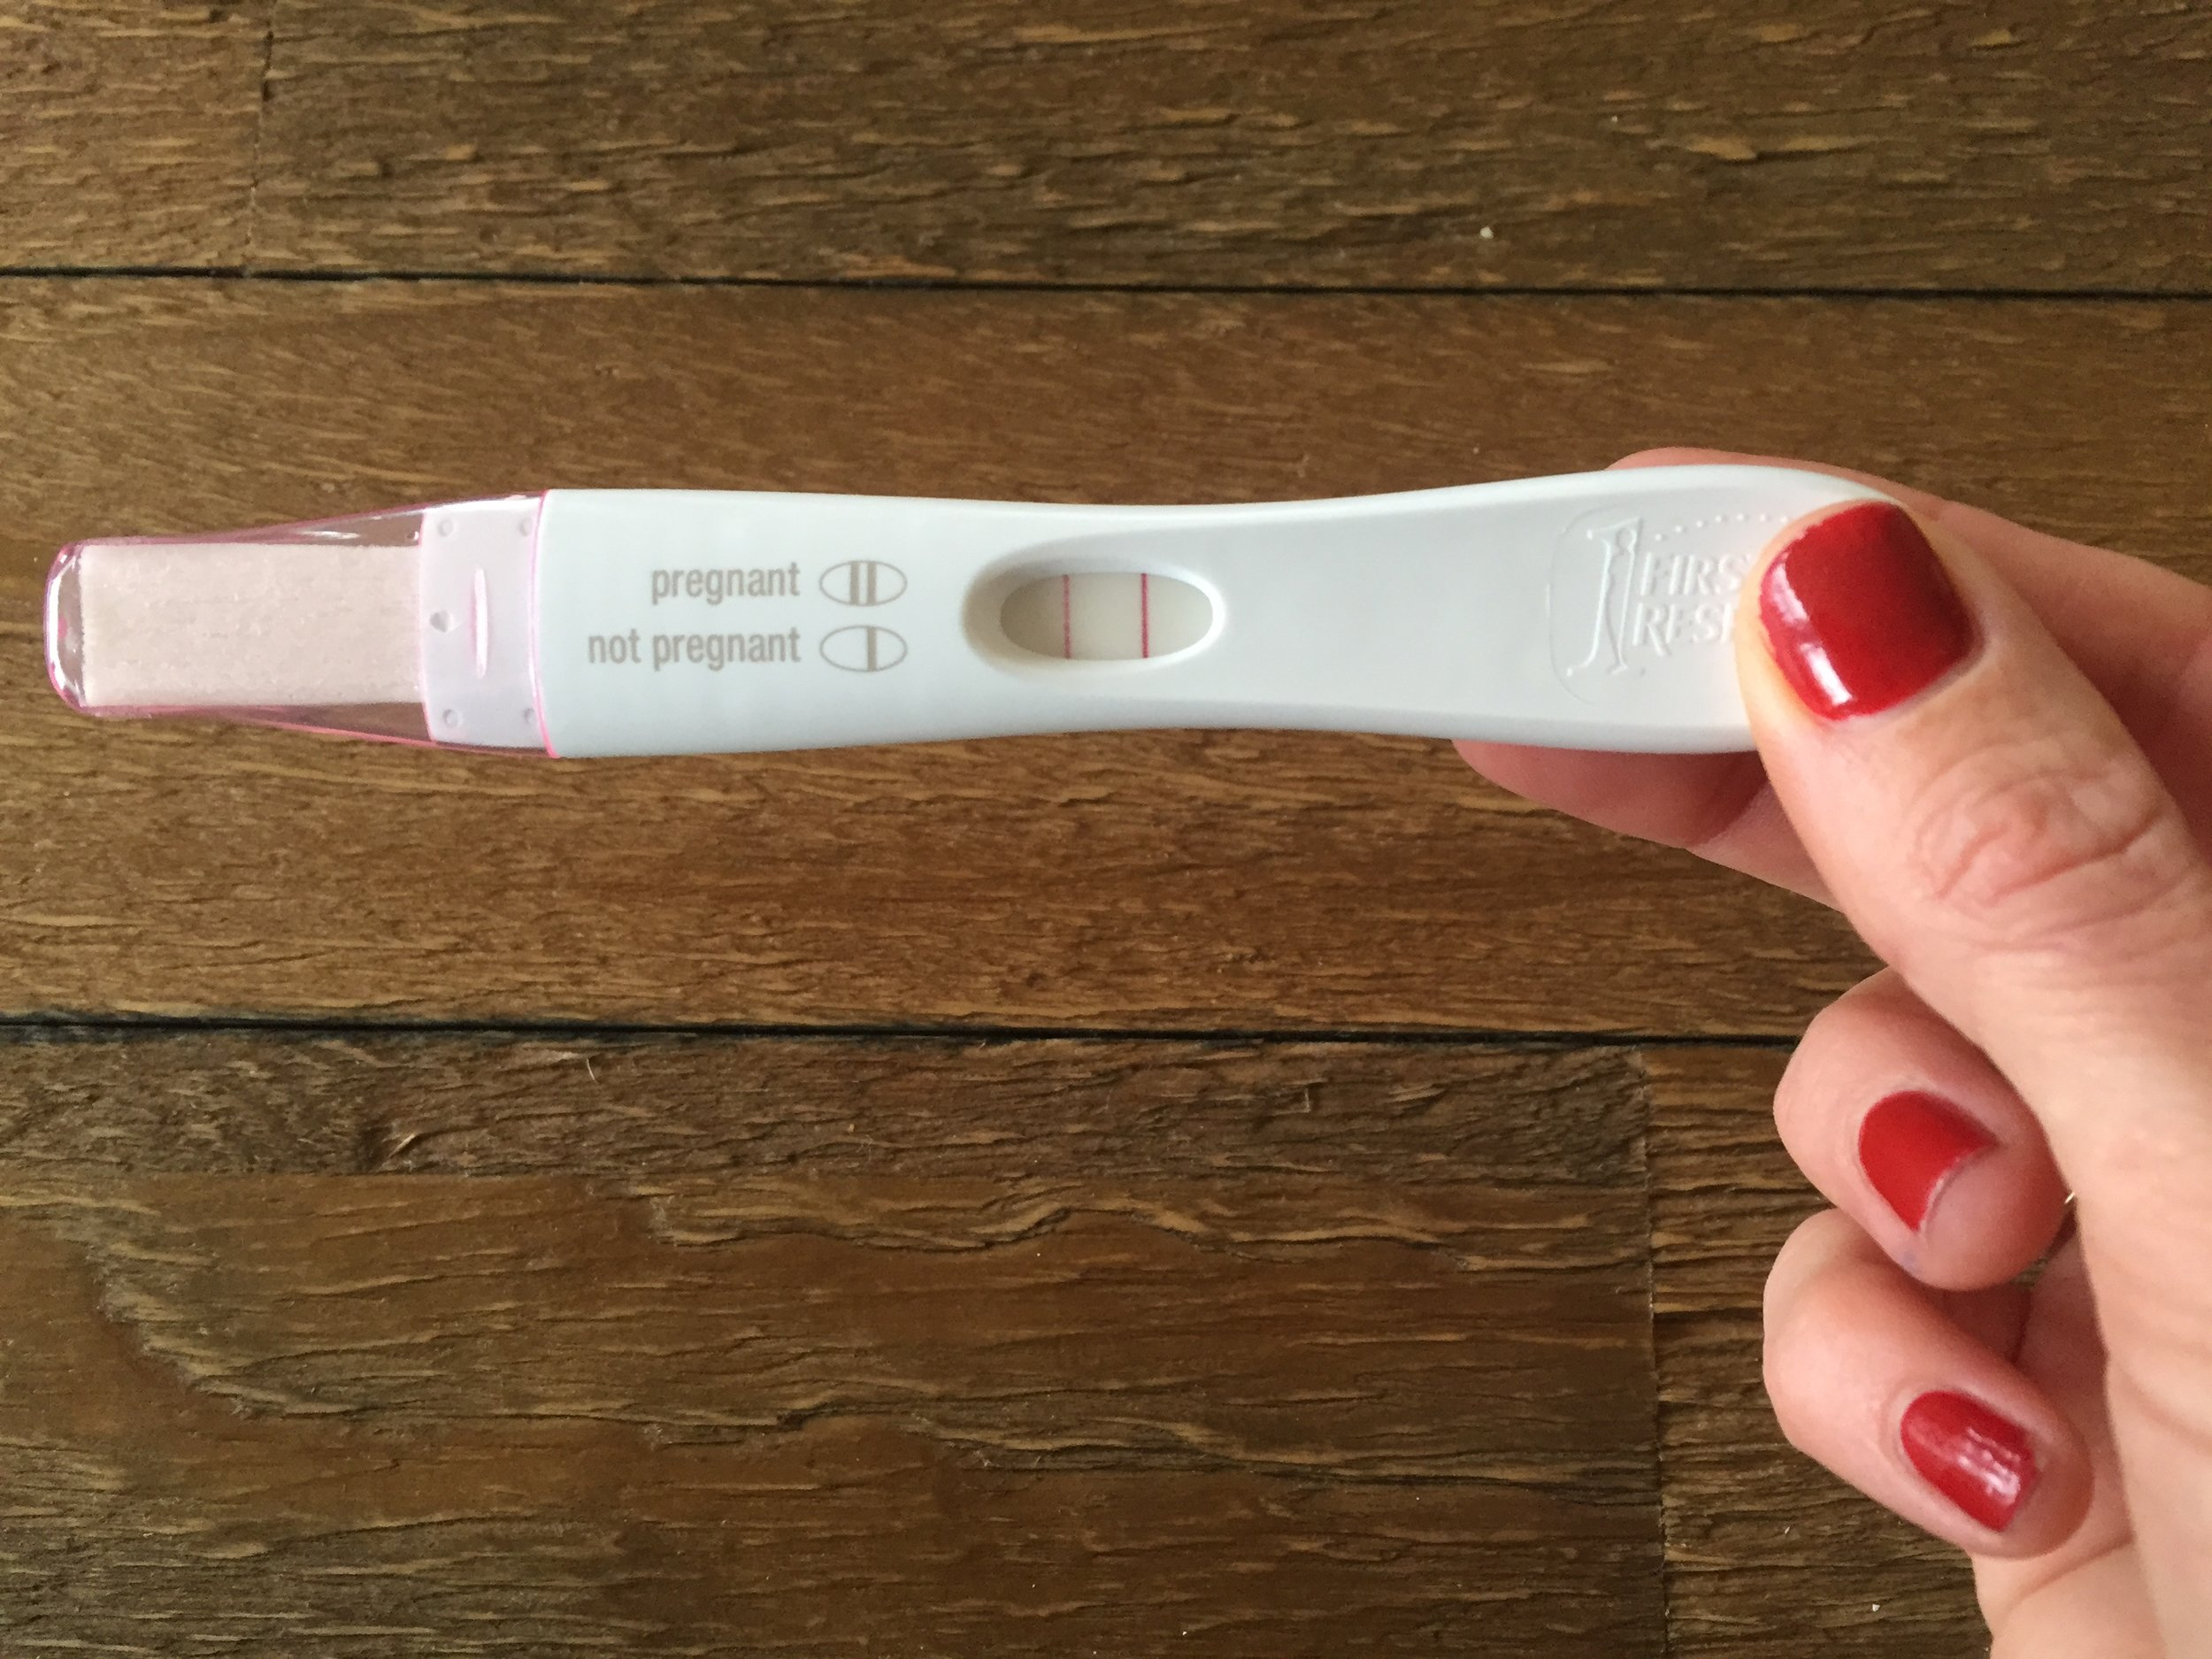 Welcome to Portland, you're pregnant!